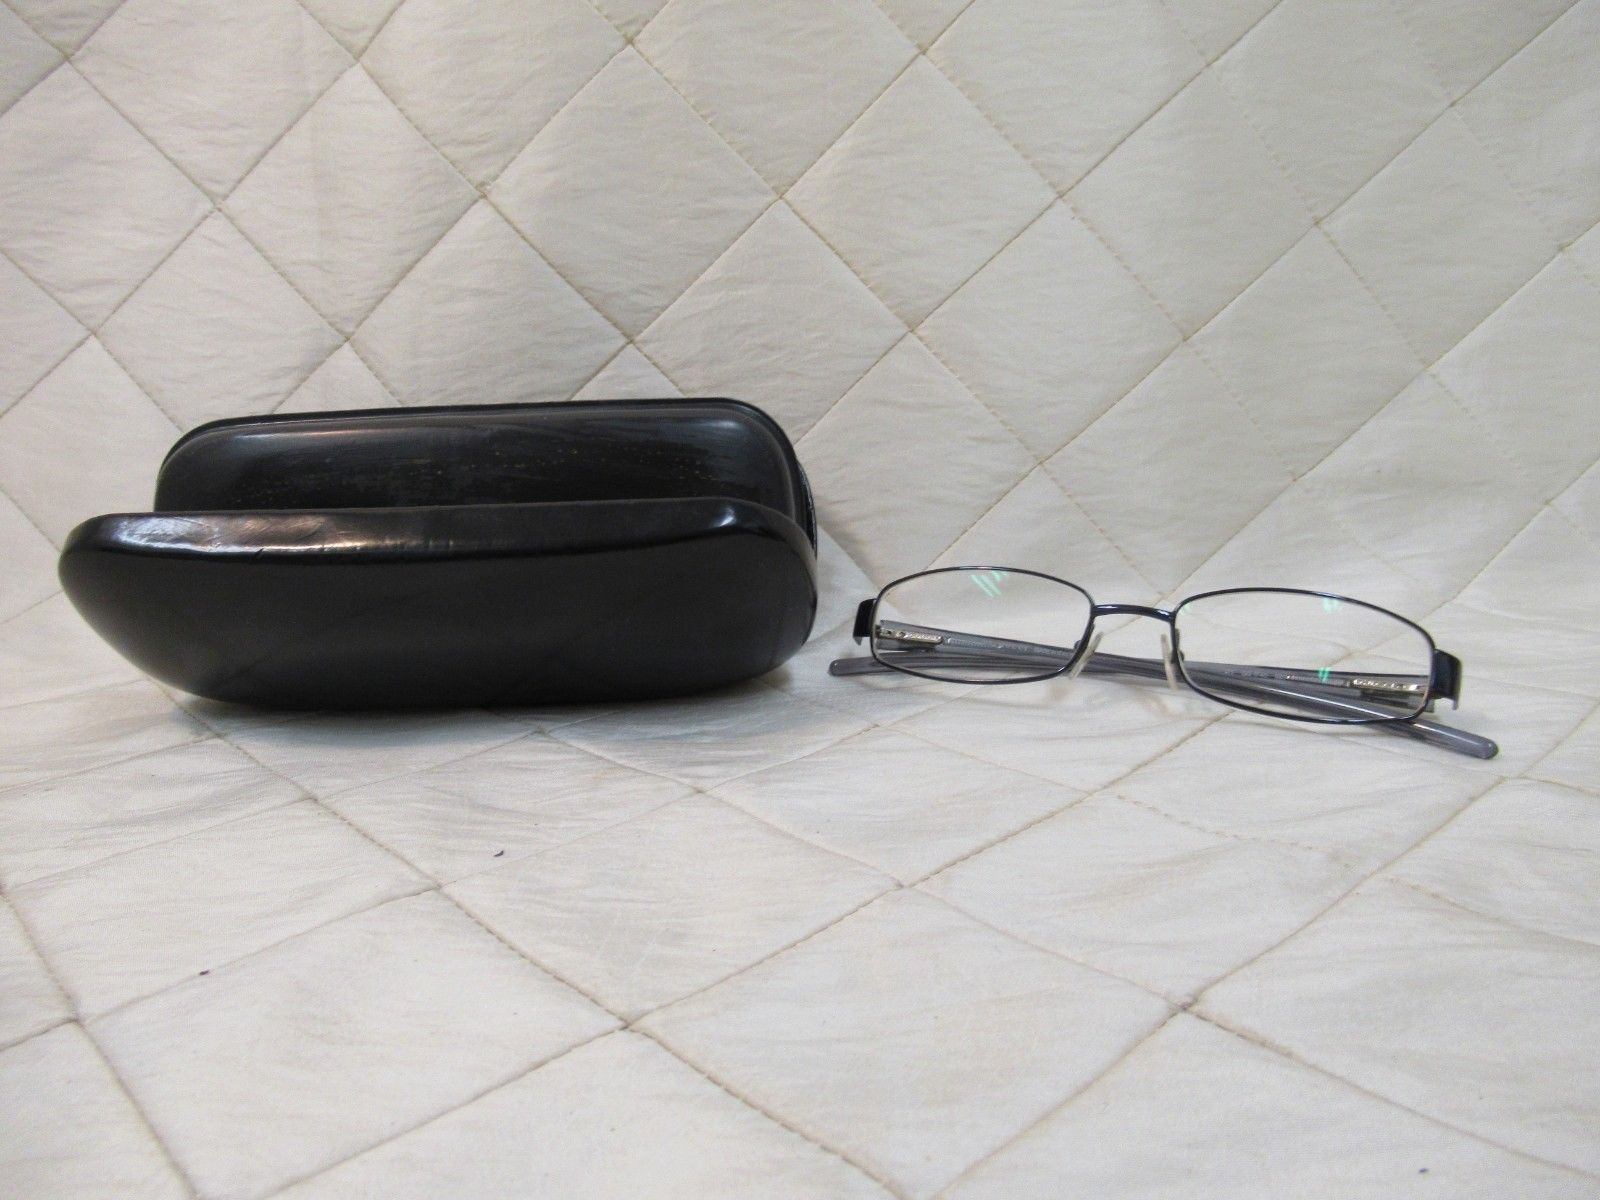 fa62271c543 Gucci Eyeglasses 135 MM GG1740 9B7 Frames and 50 similar items. 57